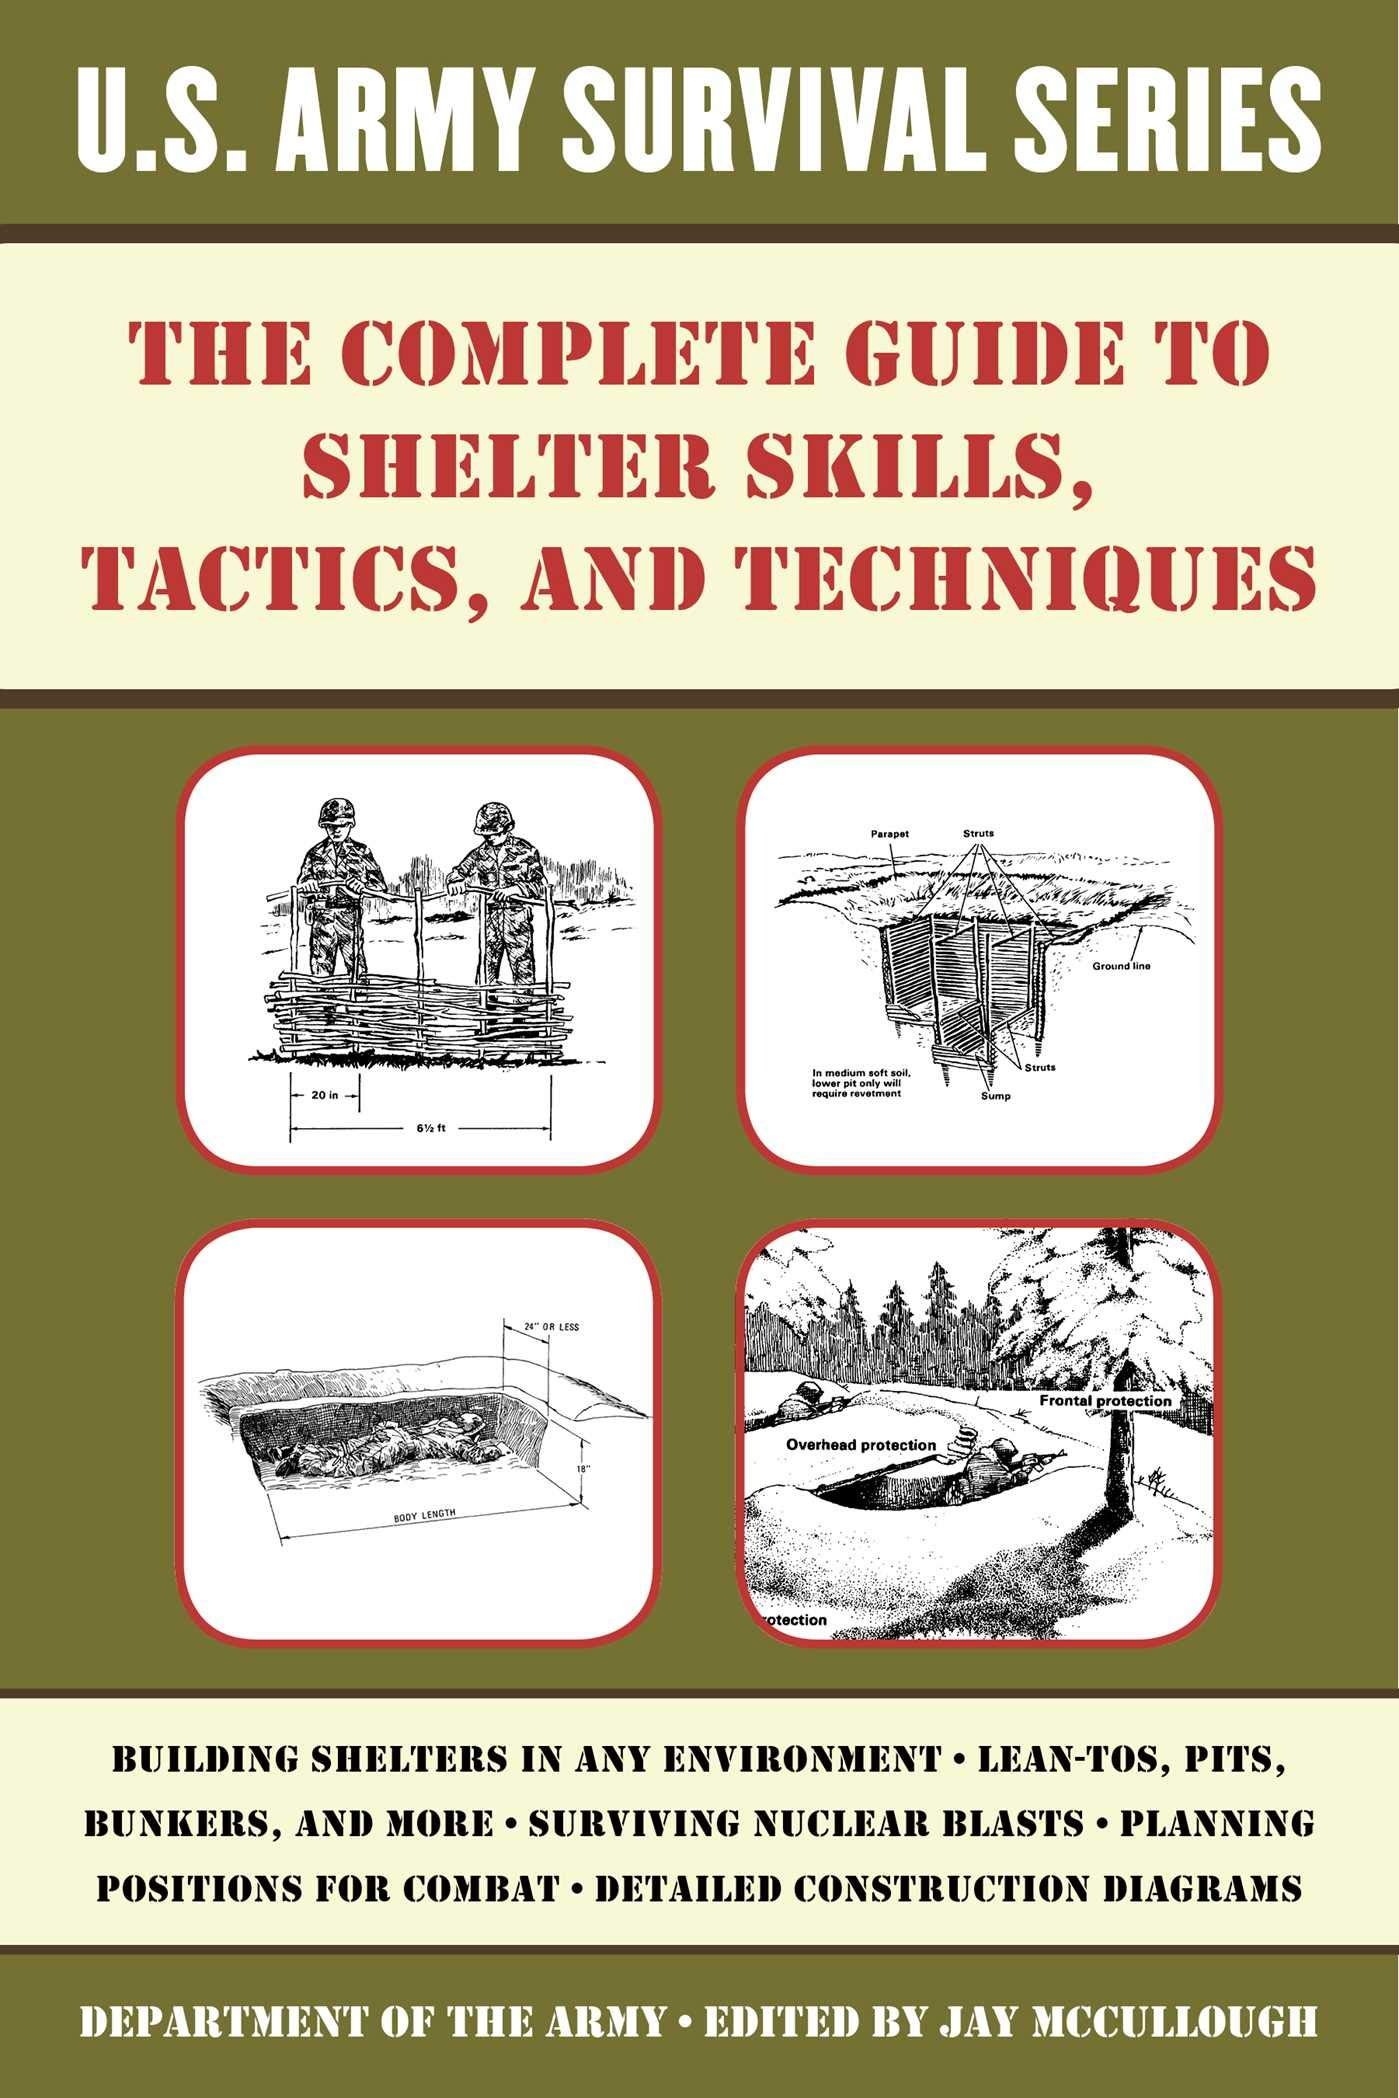 The complete u s army survival guide to shelter skills tactics and techniques paperback march 15 2016